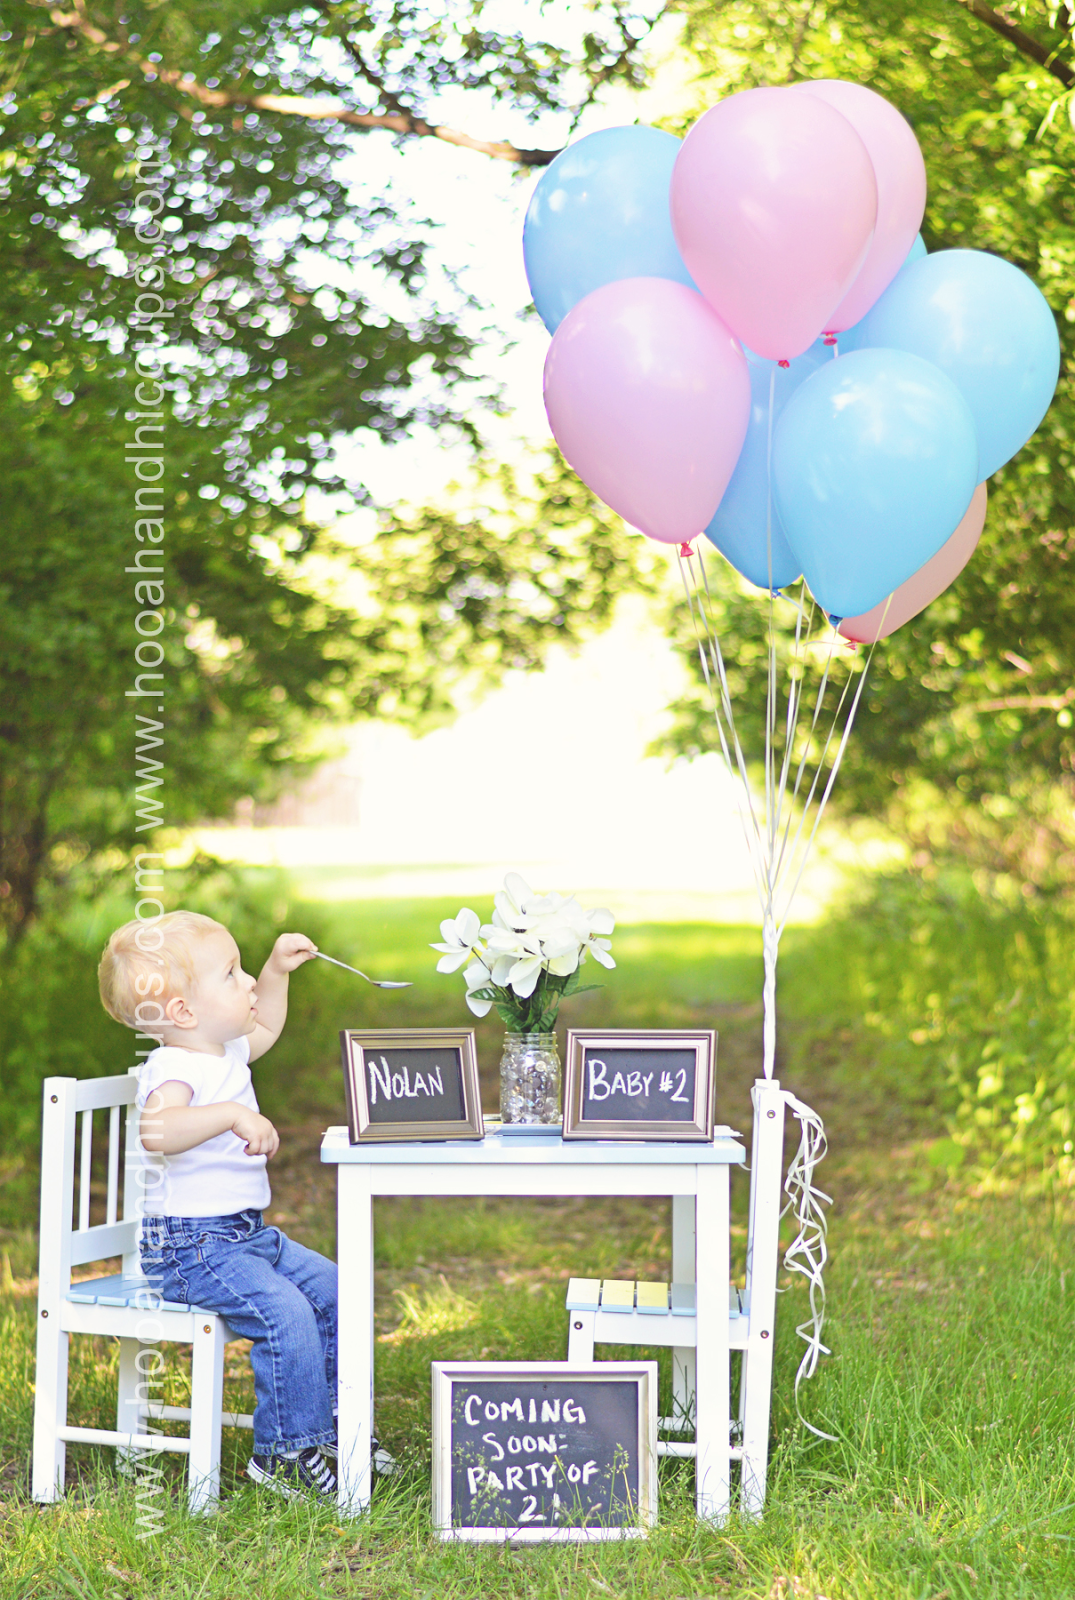 My pregnancy announcement photo – Cute Ways to Announce Second Baby